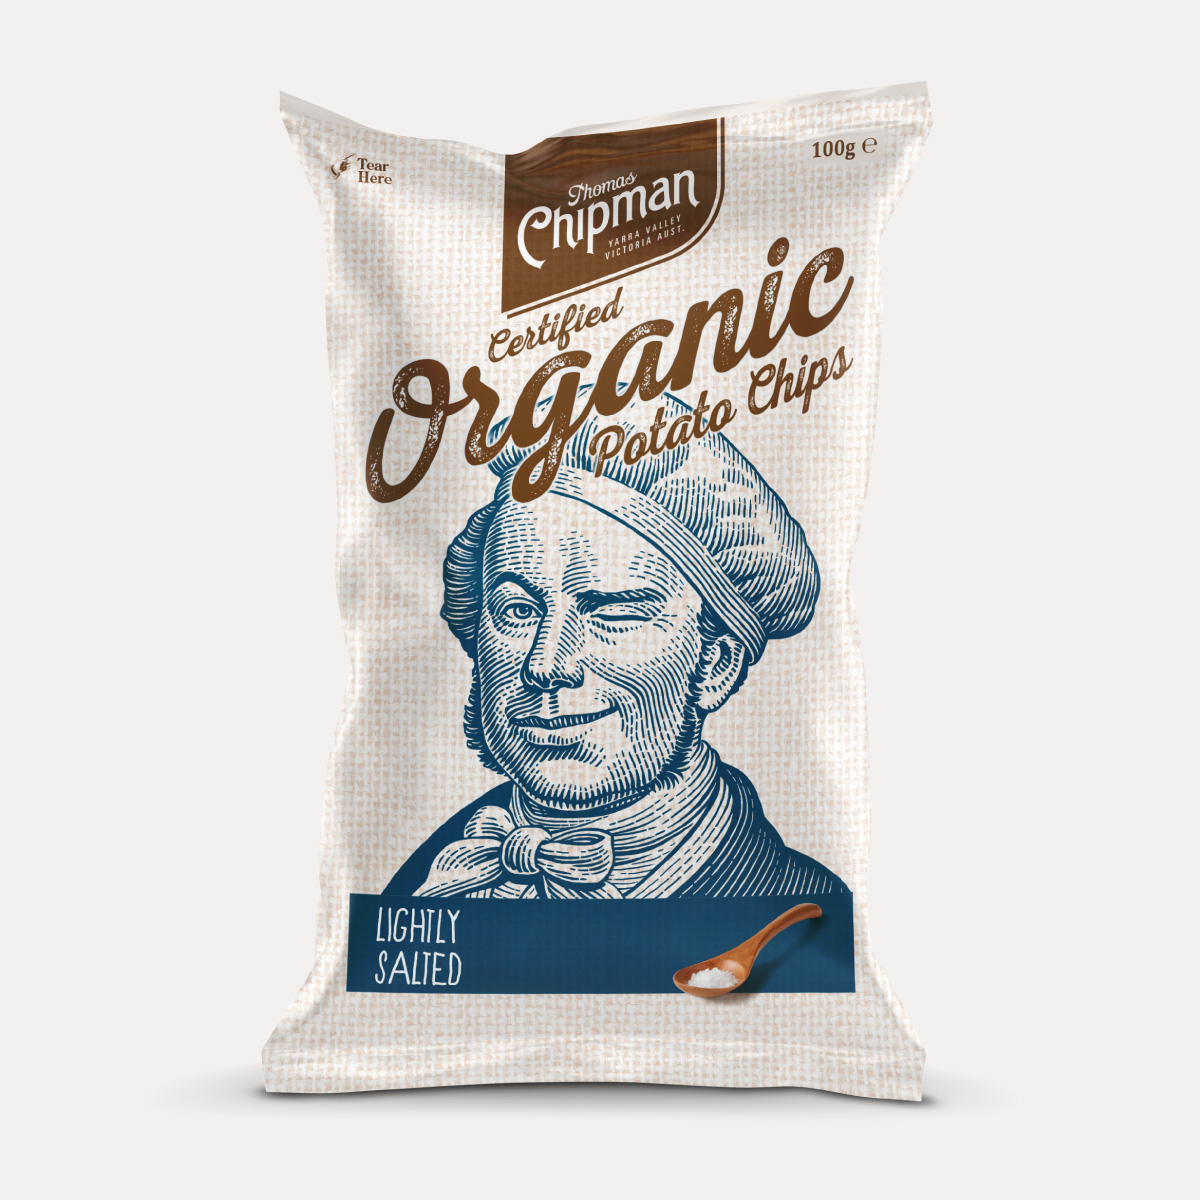 Davidson Branding FMCG Packaging Thomas Chipman Lightly Salted Chips